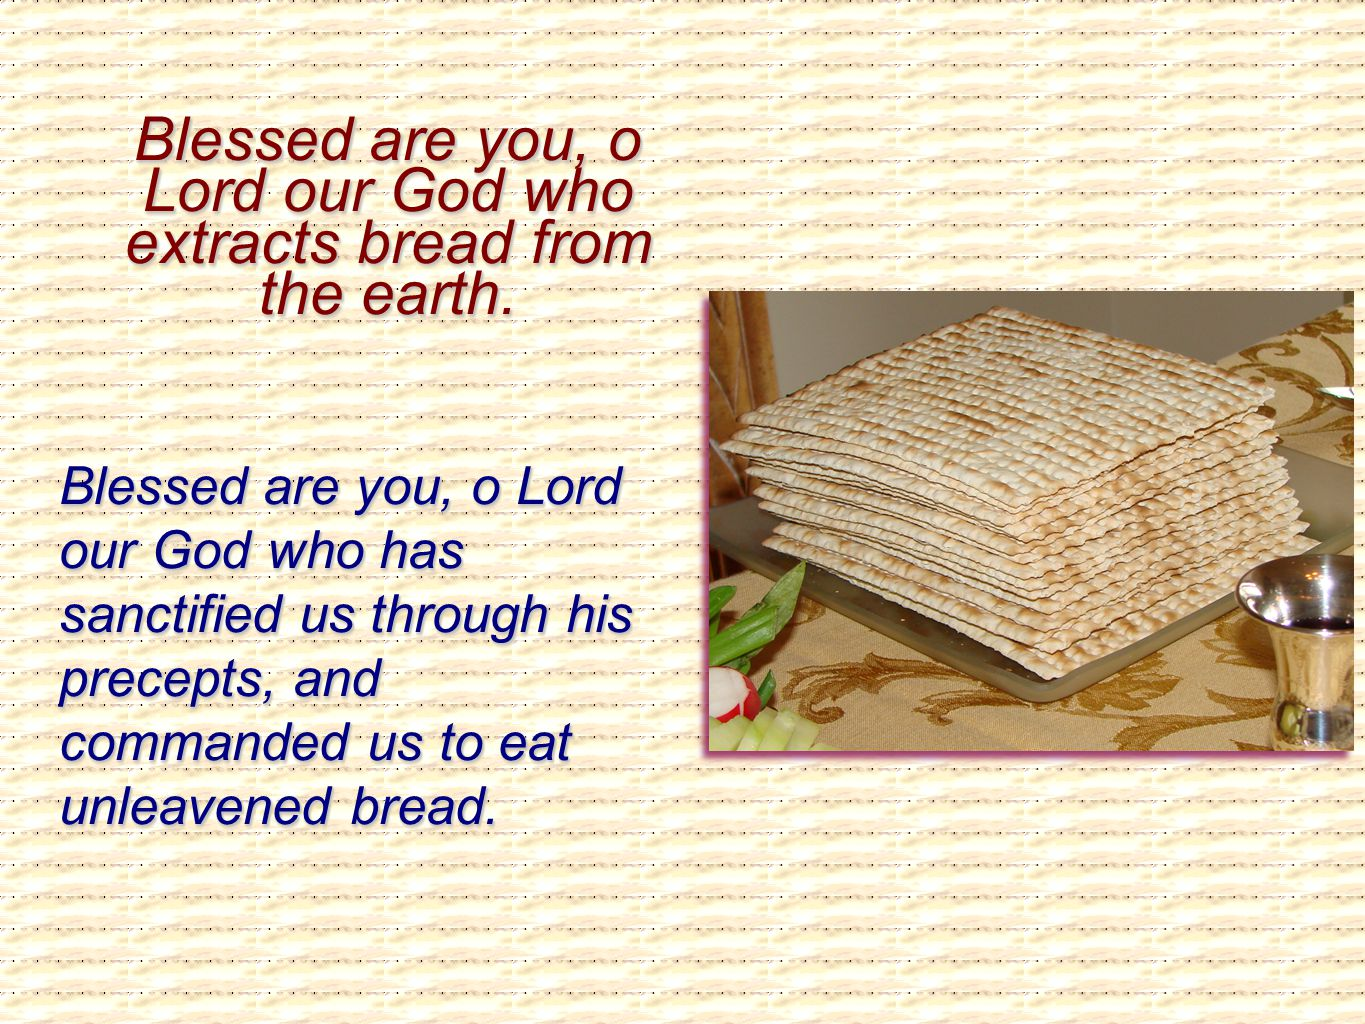 Blessed are you, o Lord our God who extracts bread from the earth. Blessed are you, o Lord our God who has sanctified us through his precepts, and com